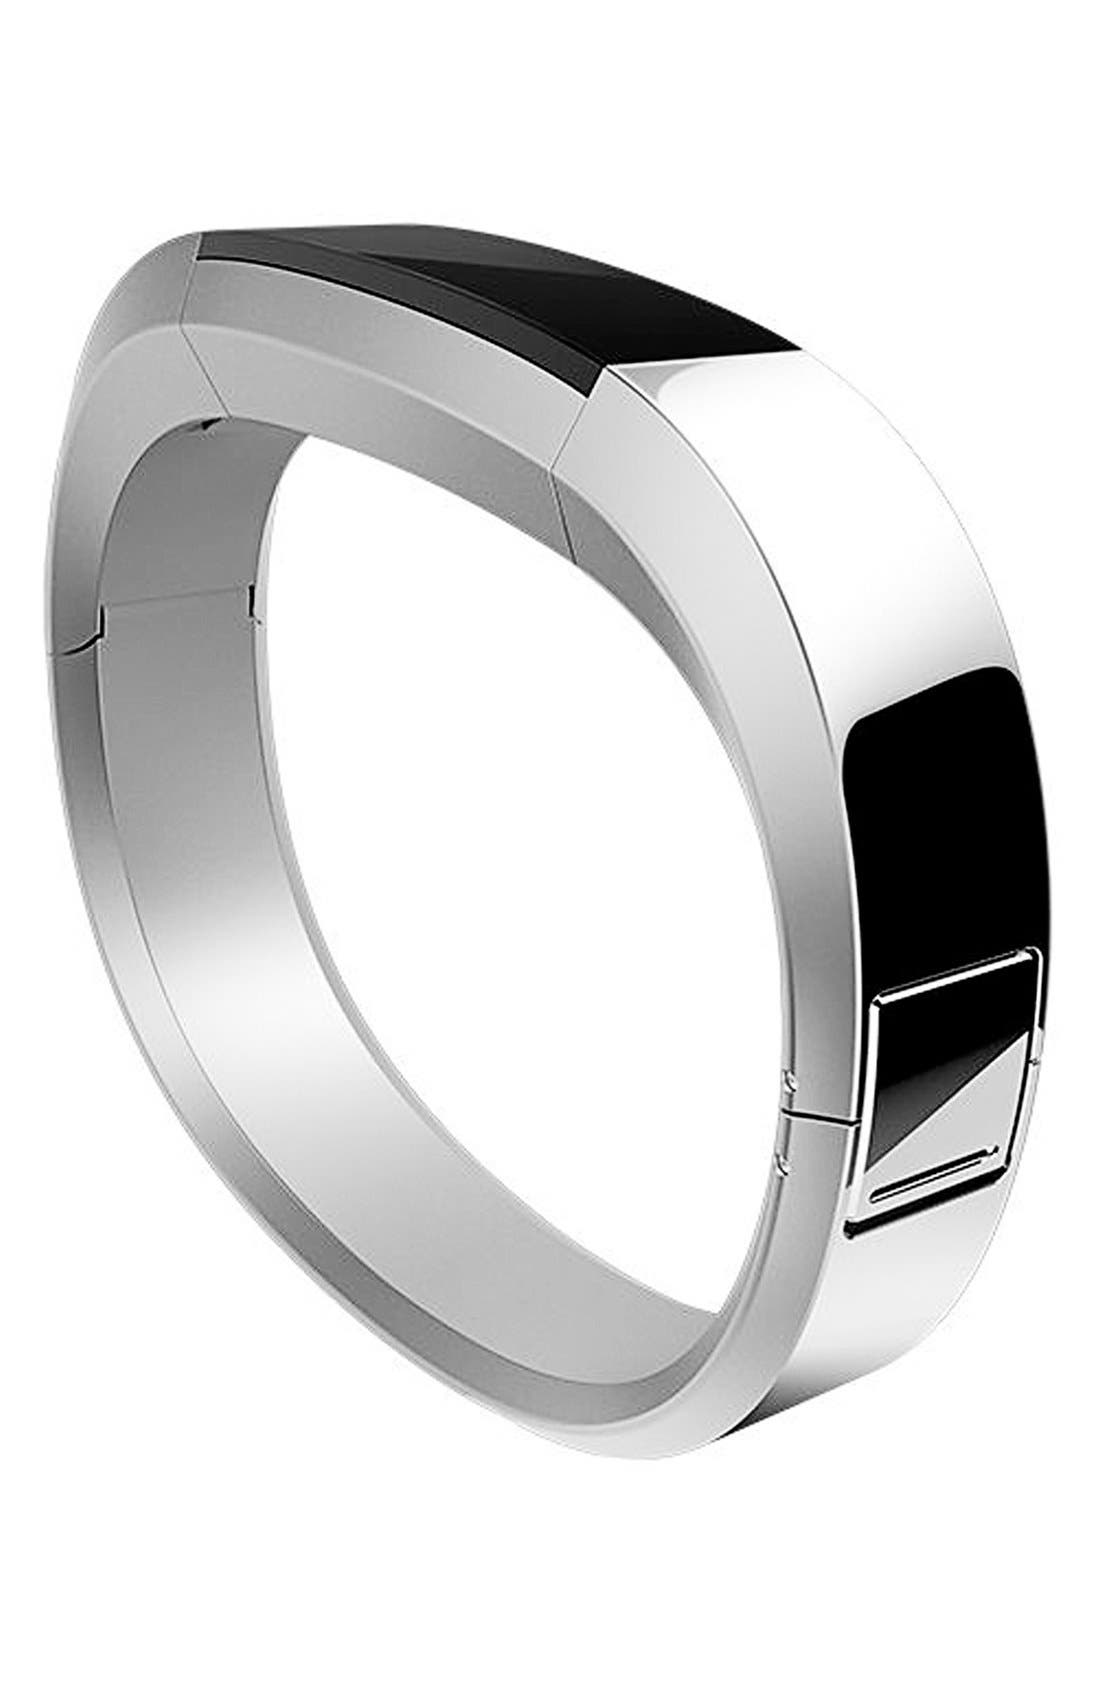 Main Image - Fitbit 'Alta' Stainless Steel Accessory Band